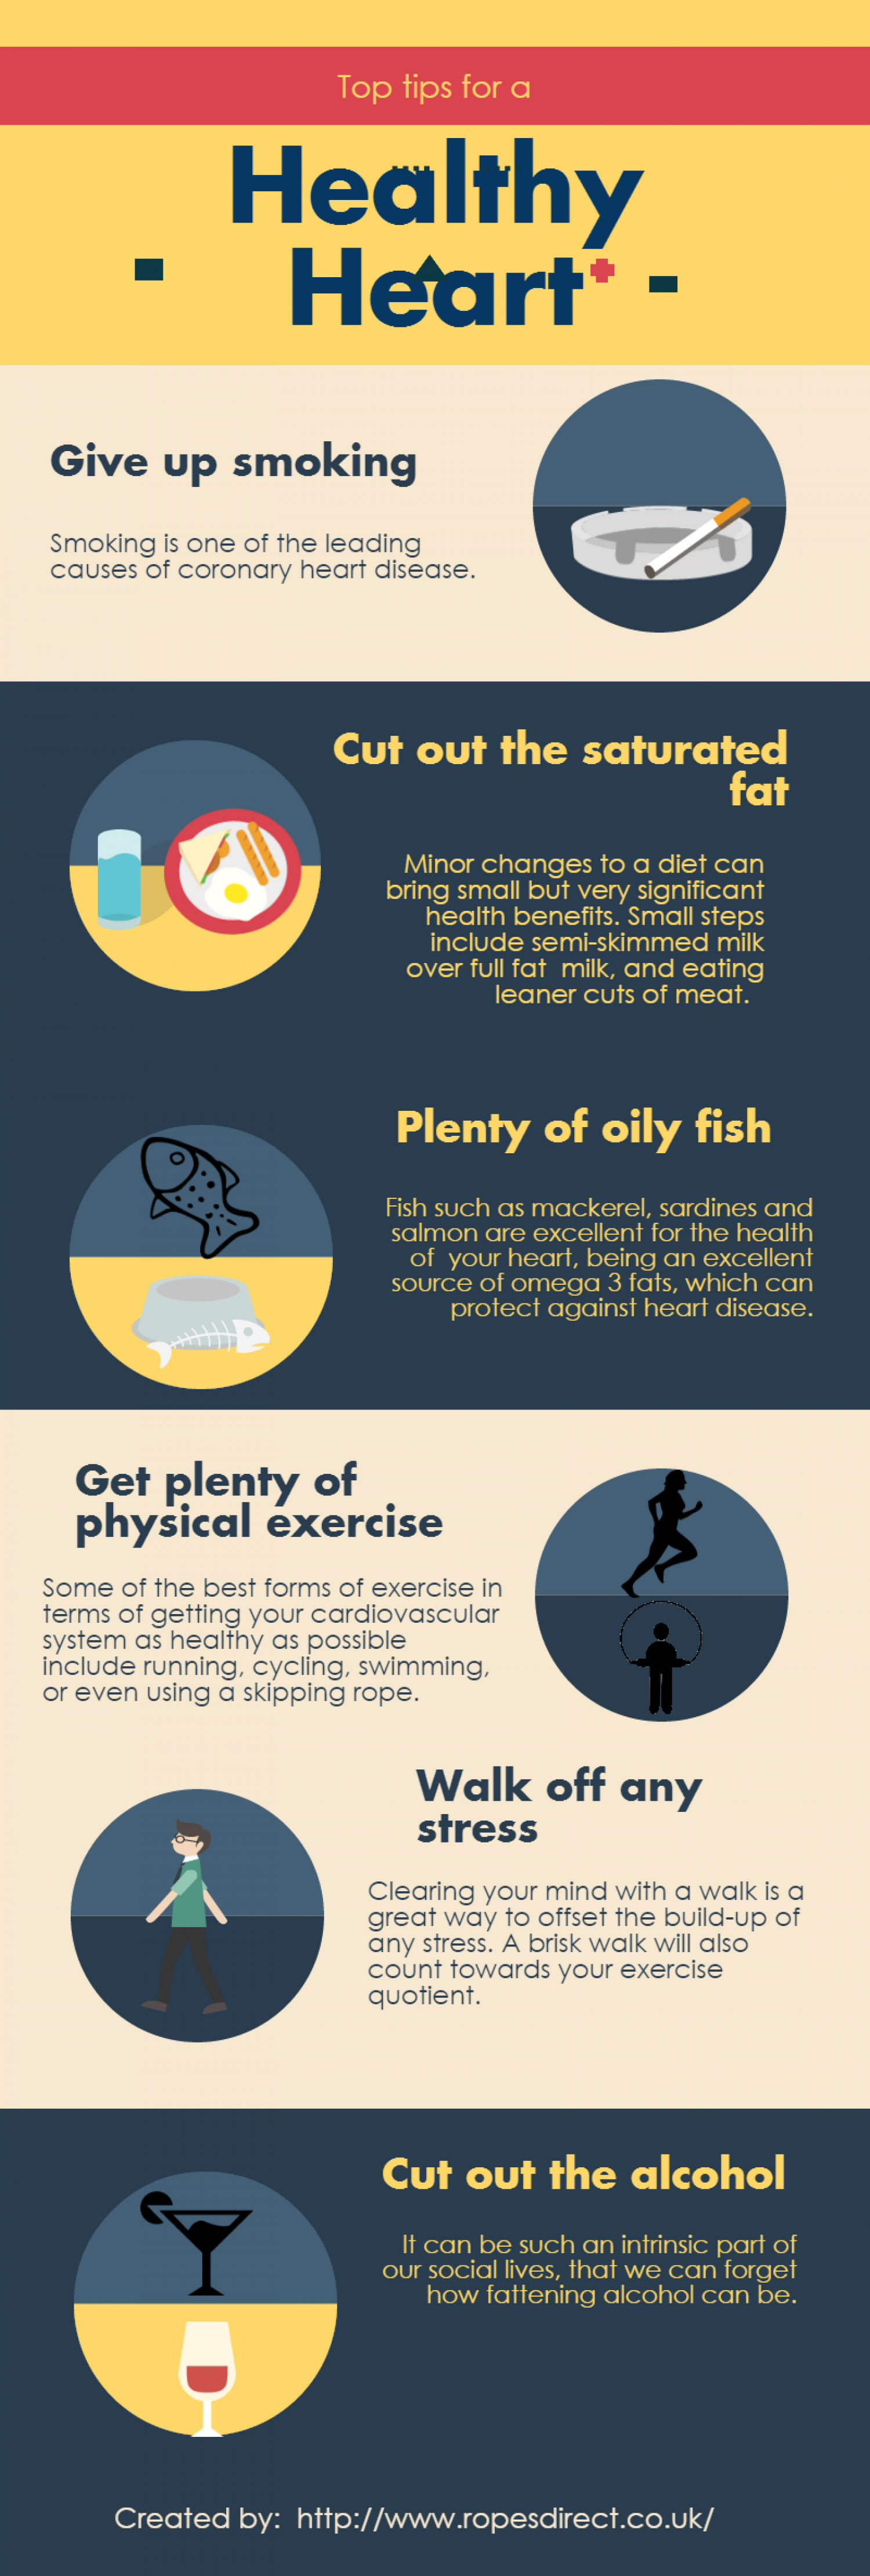 Top Tips for a Healthy Heart Infographic